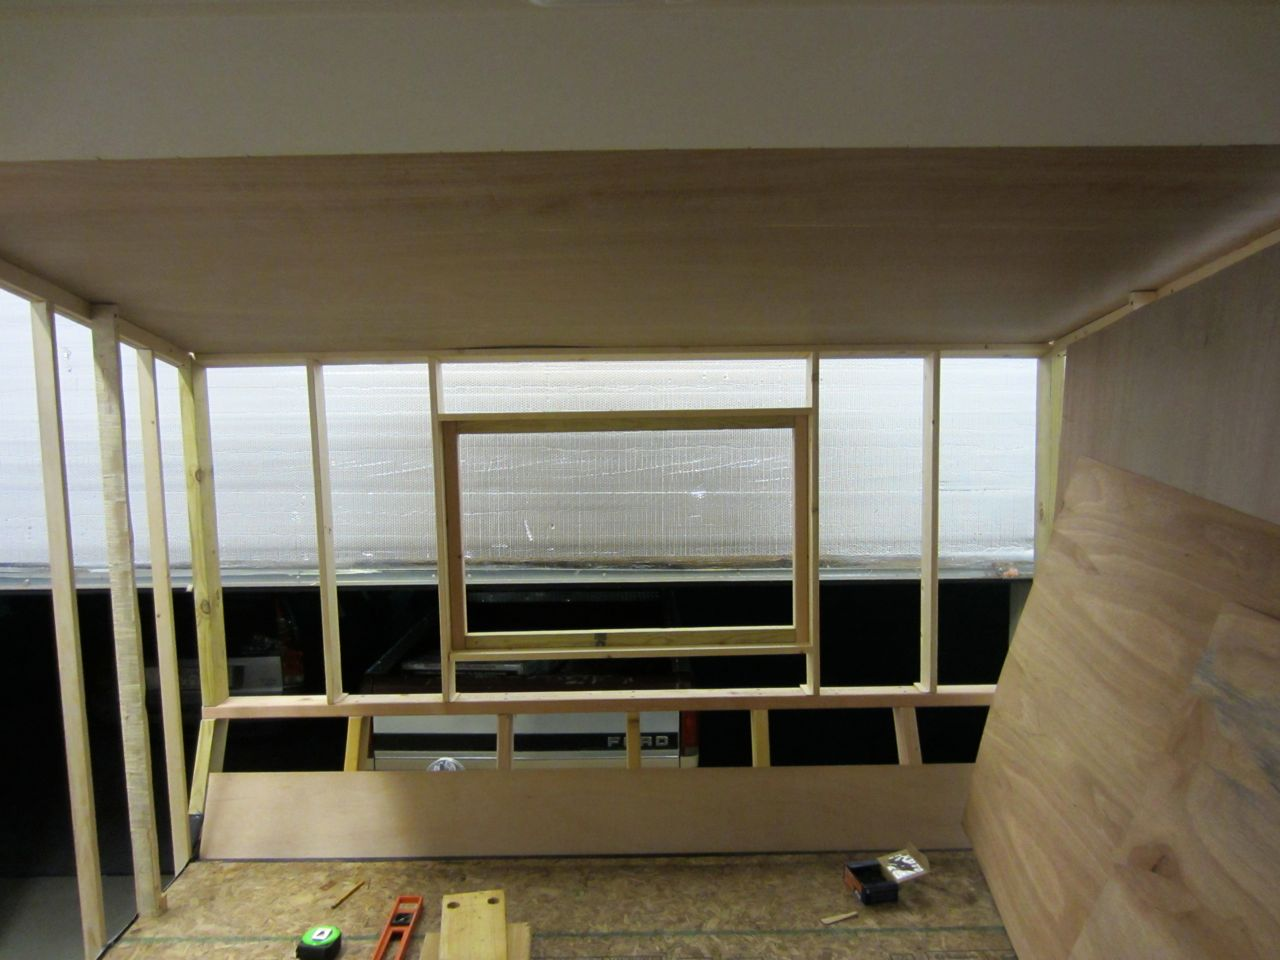 Window frame mounted into the front bedroom walls after we screwed in the front bedroom studs.